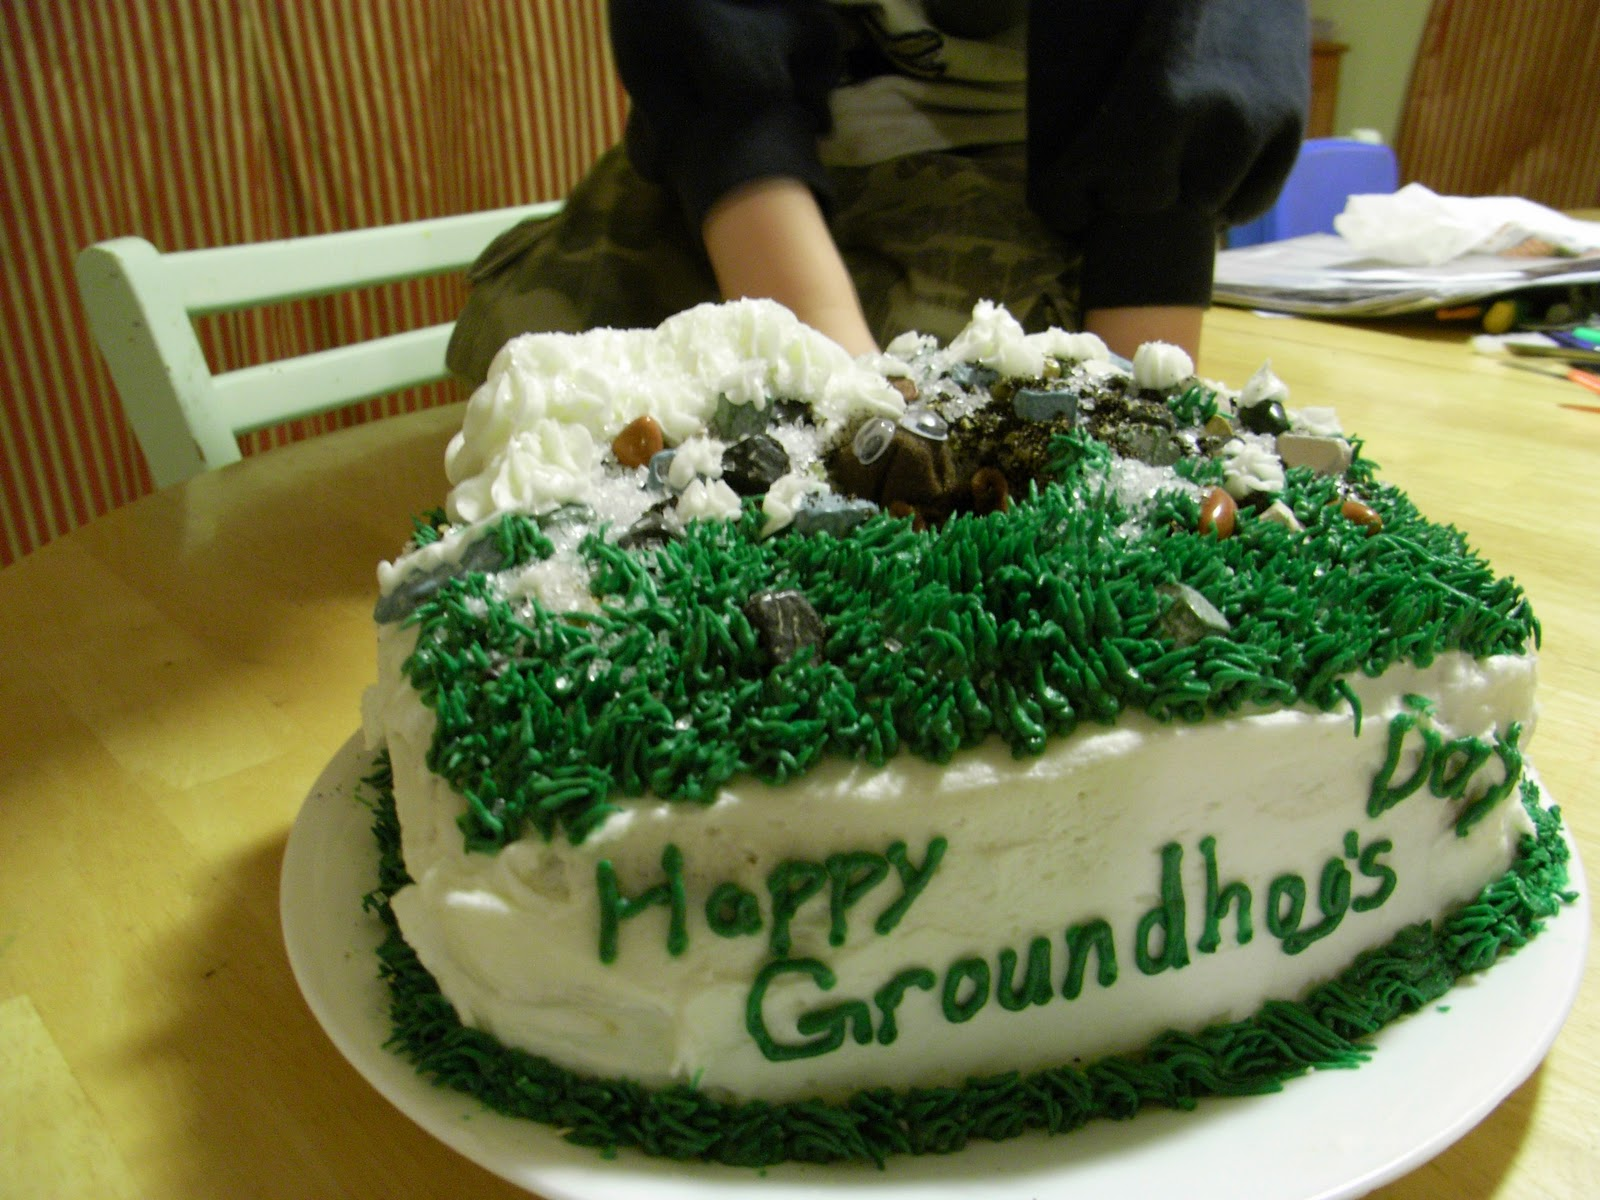 ... cake coffee tres leches cake pig cake cake in a mug groundhog day cake